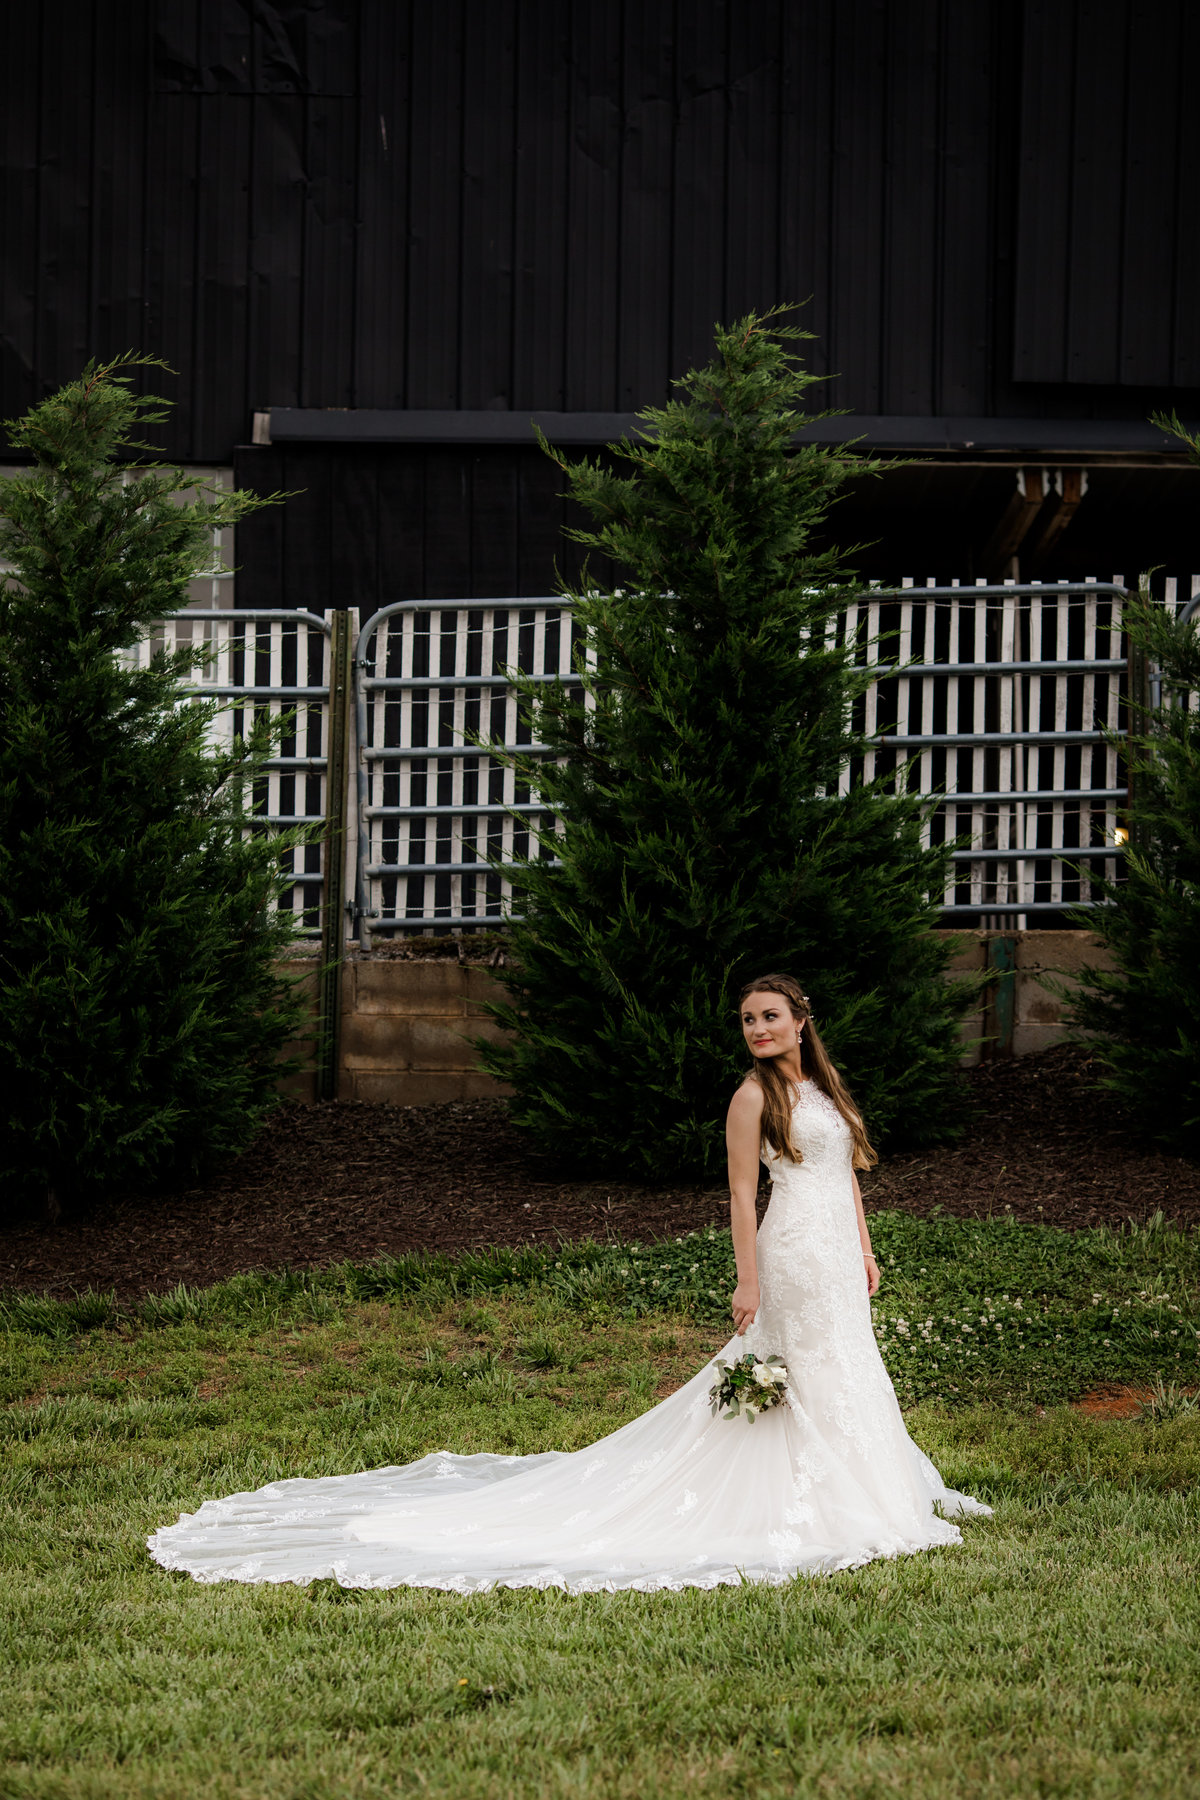 Nsshville Bride - Nashville Brides - The Hayloft Weddings - Tennessee Brides - Kentucky Brides - Southern Brides - Cowboys Wife - Cowboys Bride - Ranch Weddings - Cowboys and Belles049